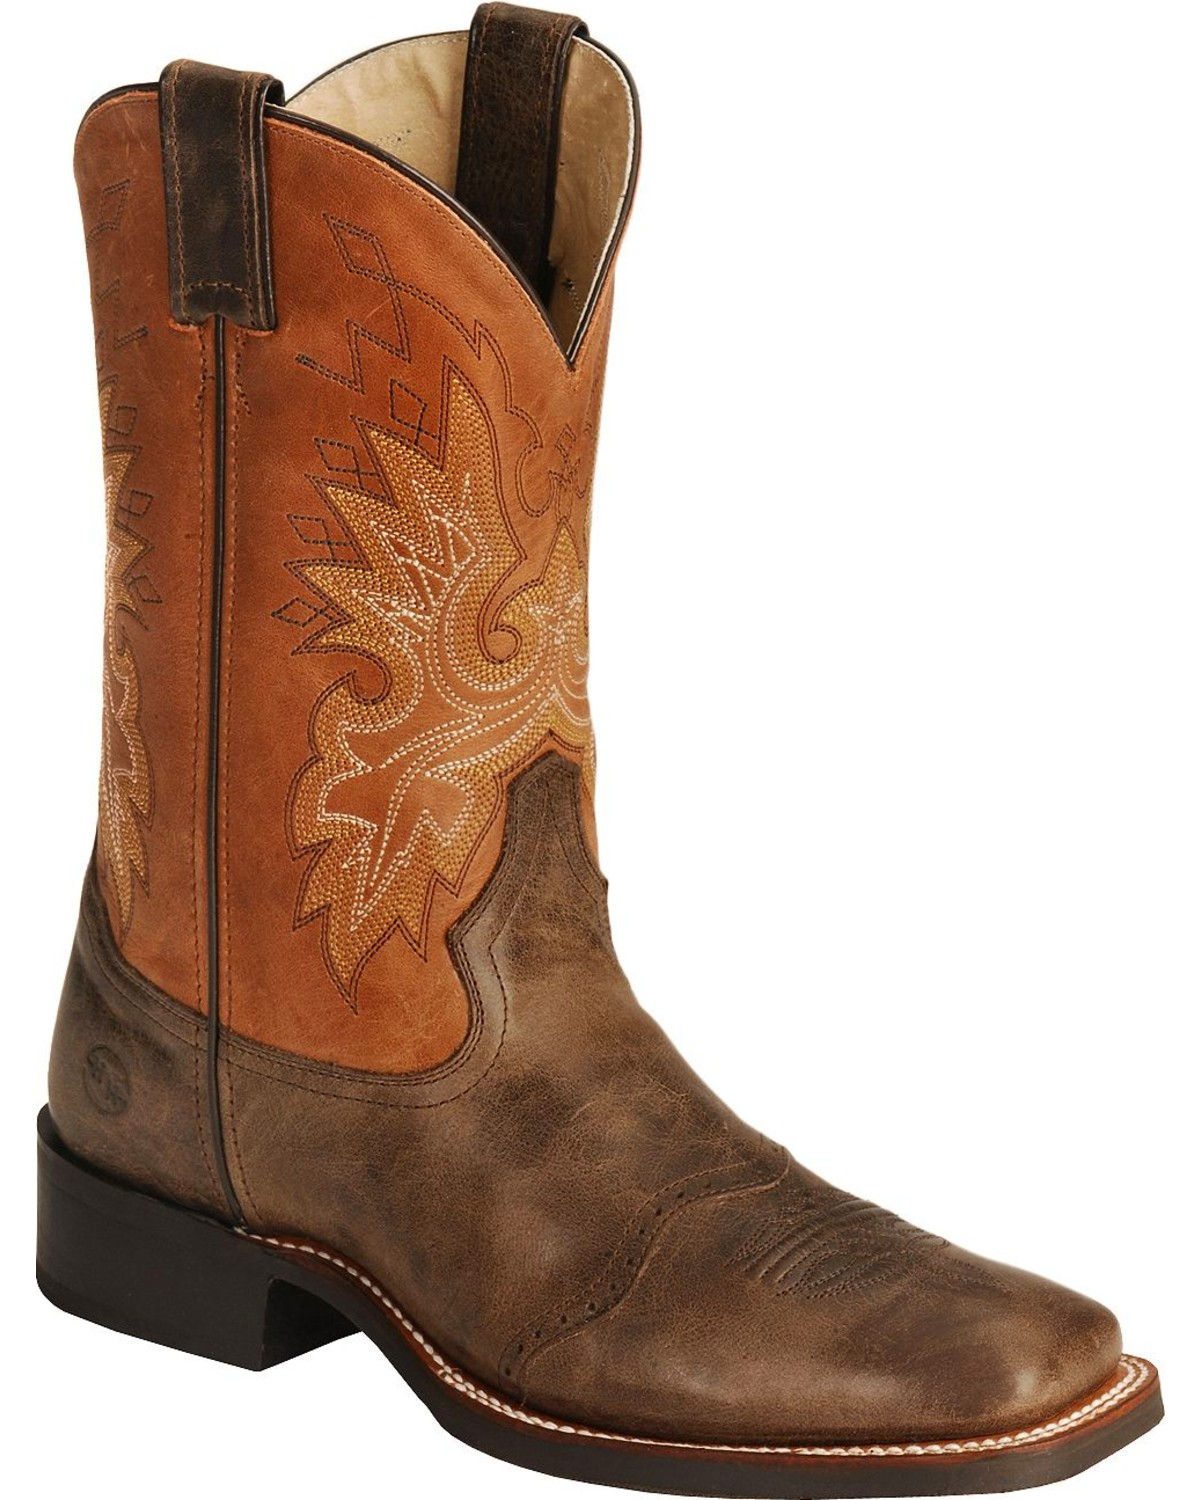 PFI Western, Home of BootDaddy, is America's Western Store. We offer all of your favorite western clothing, footwear and accessories. Shop PFI's wide variety of cowboy and cowgirl boots, including our unique line of BootDaddy boots only available at PFI.